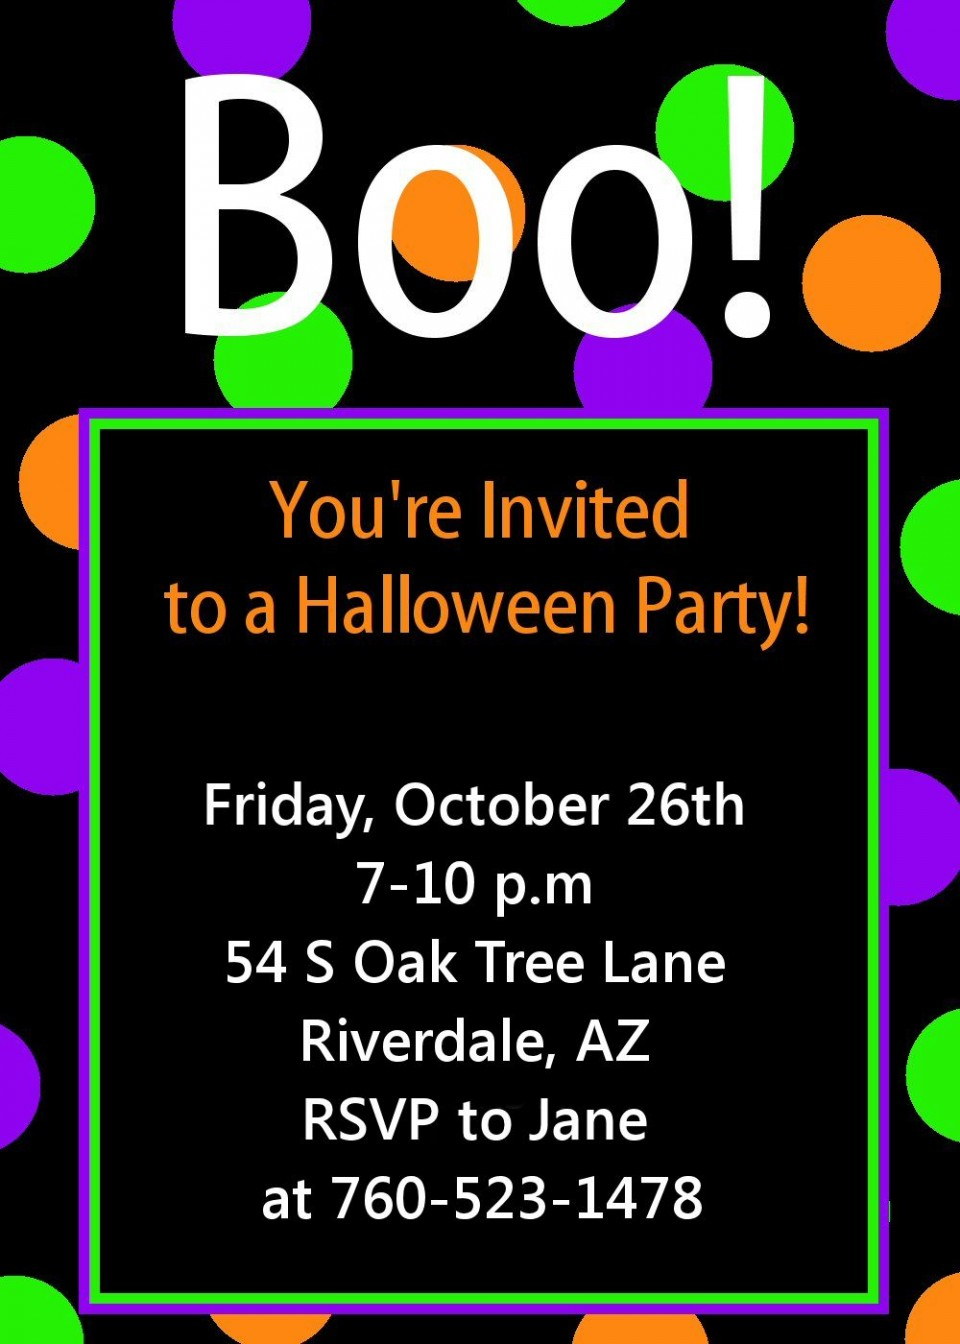 009 Awful Free Halloween Party Invitation Template Picture  Printable Birthday For Word Download960